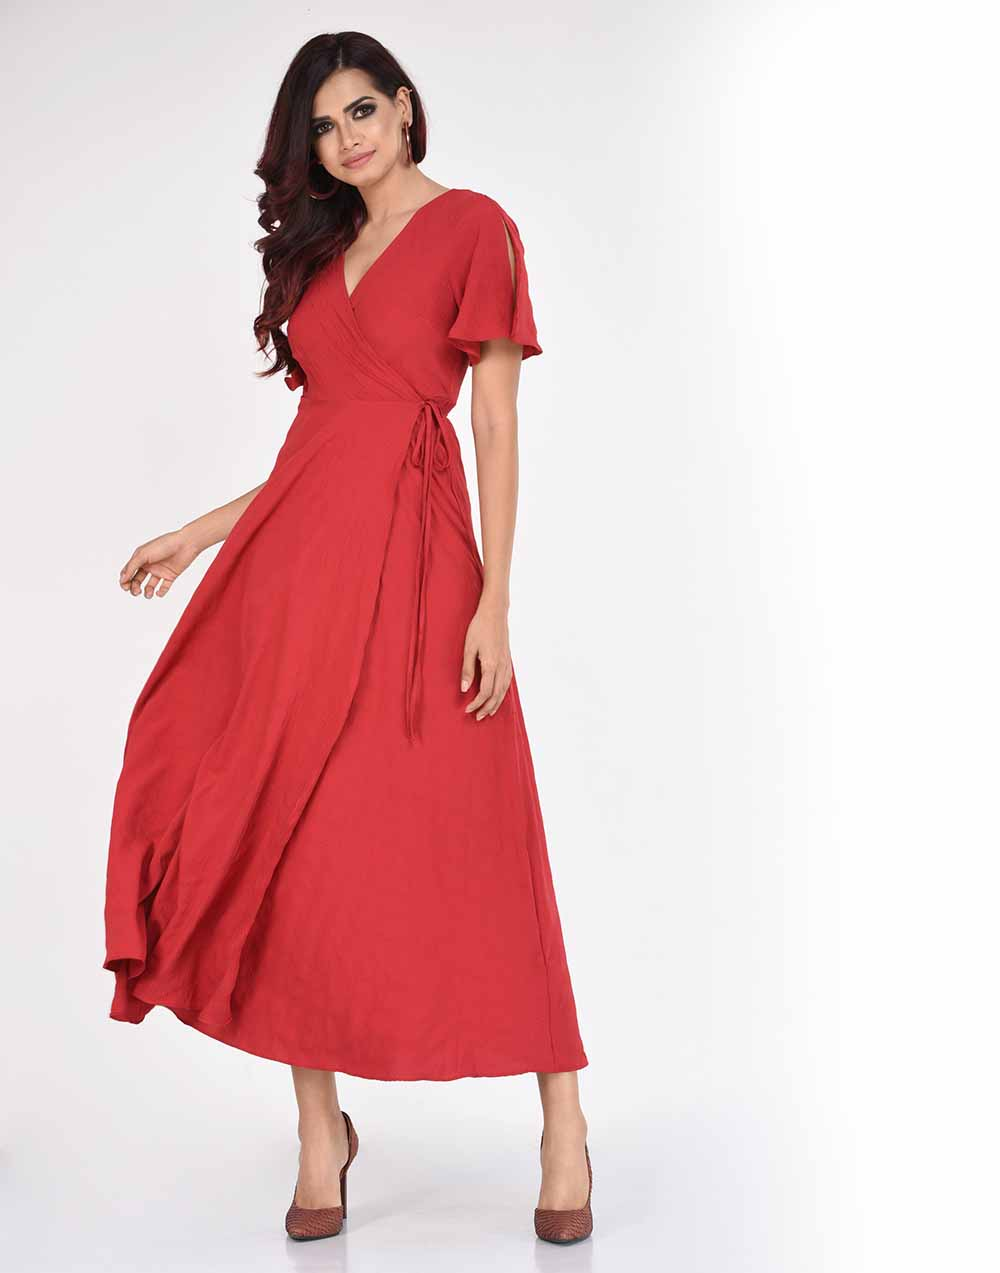 8450bece07c Casual Red Dress With Pockets - Gomes Weine AG